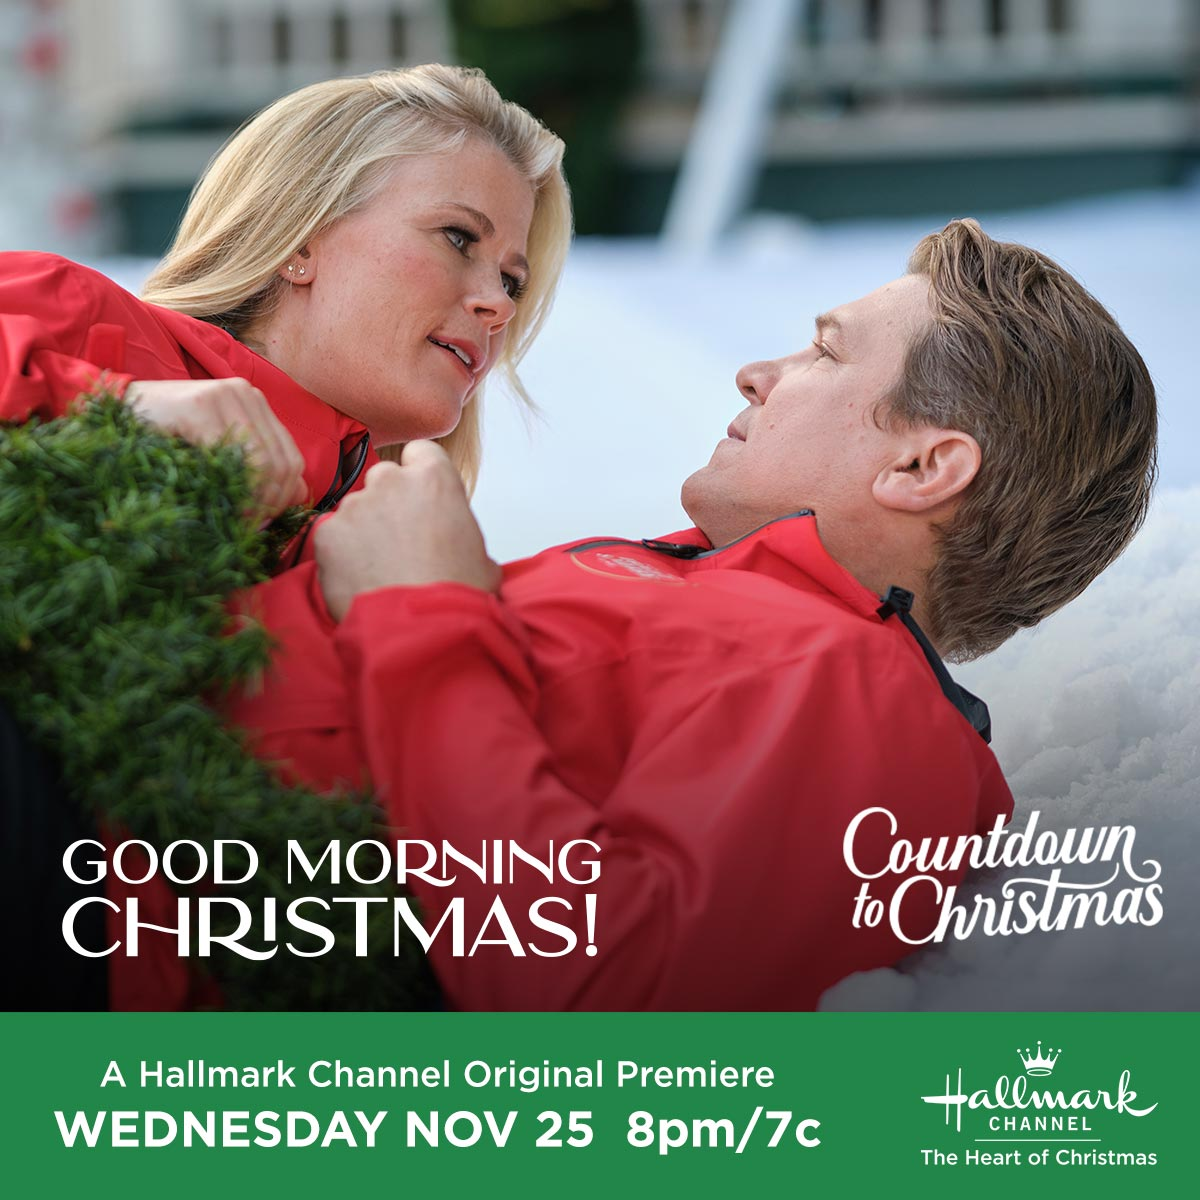 """Hallmark Channel Original Premiere of """"Good Morning Christmas!"""" on Wednesday, Nov 25th at 8pm/7c ..."""